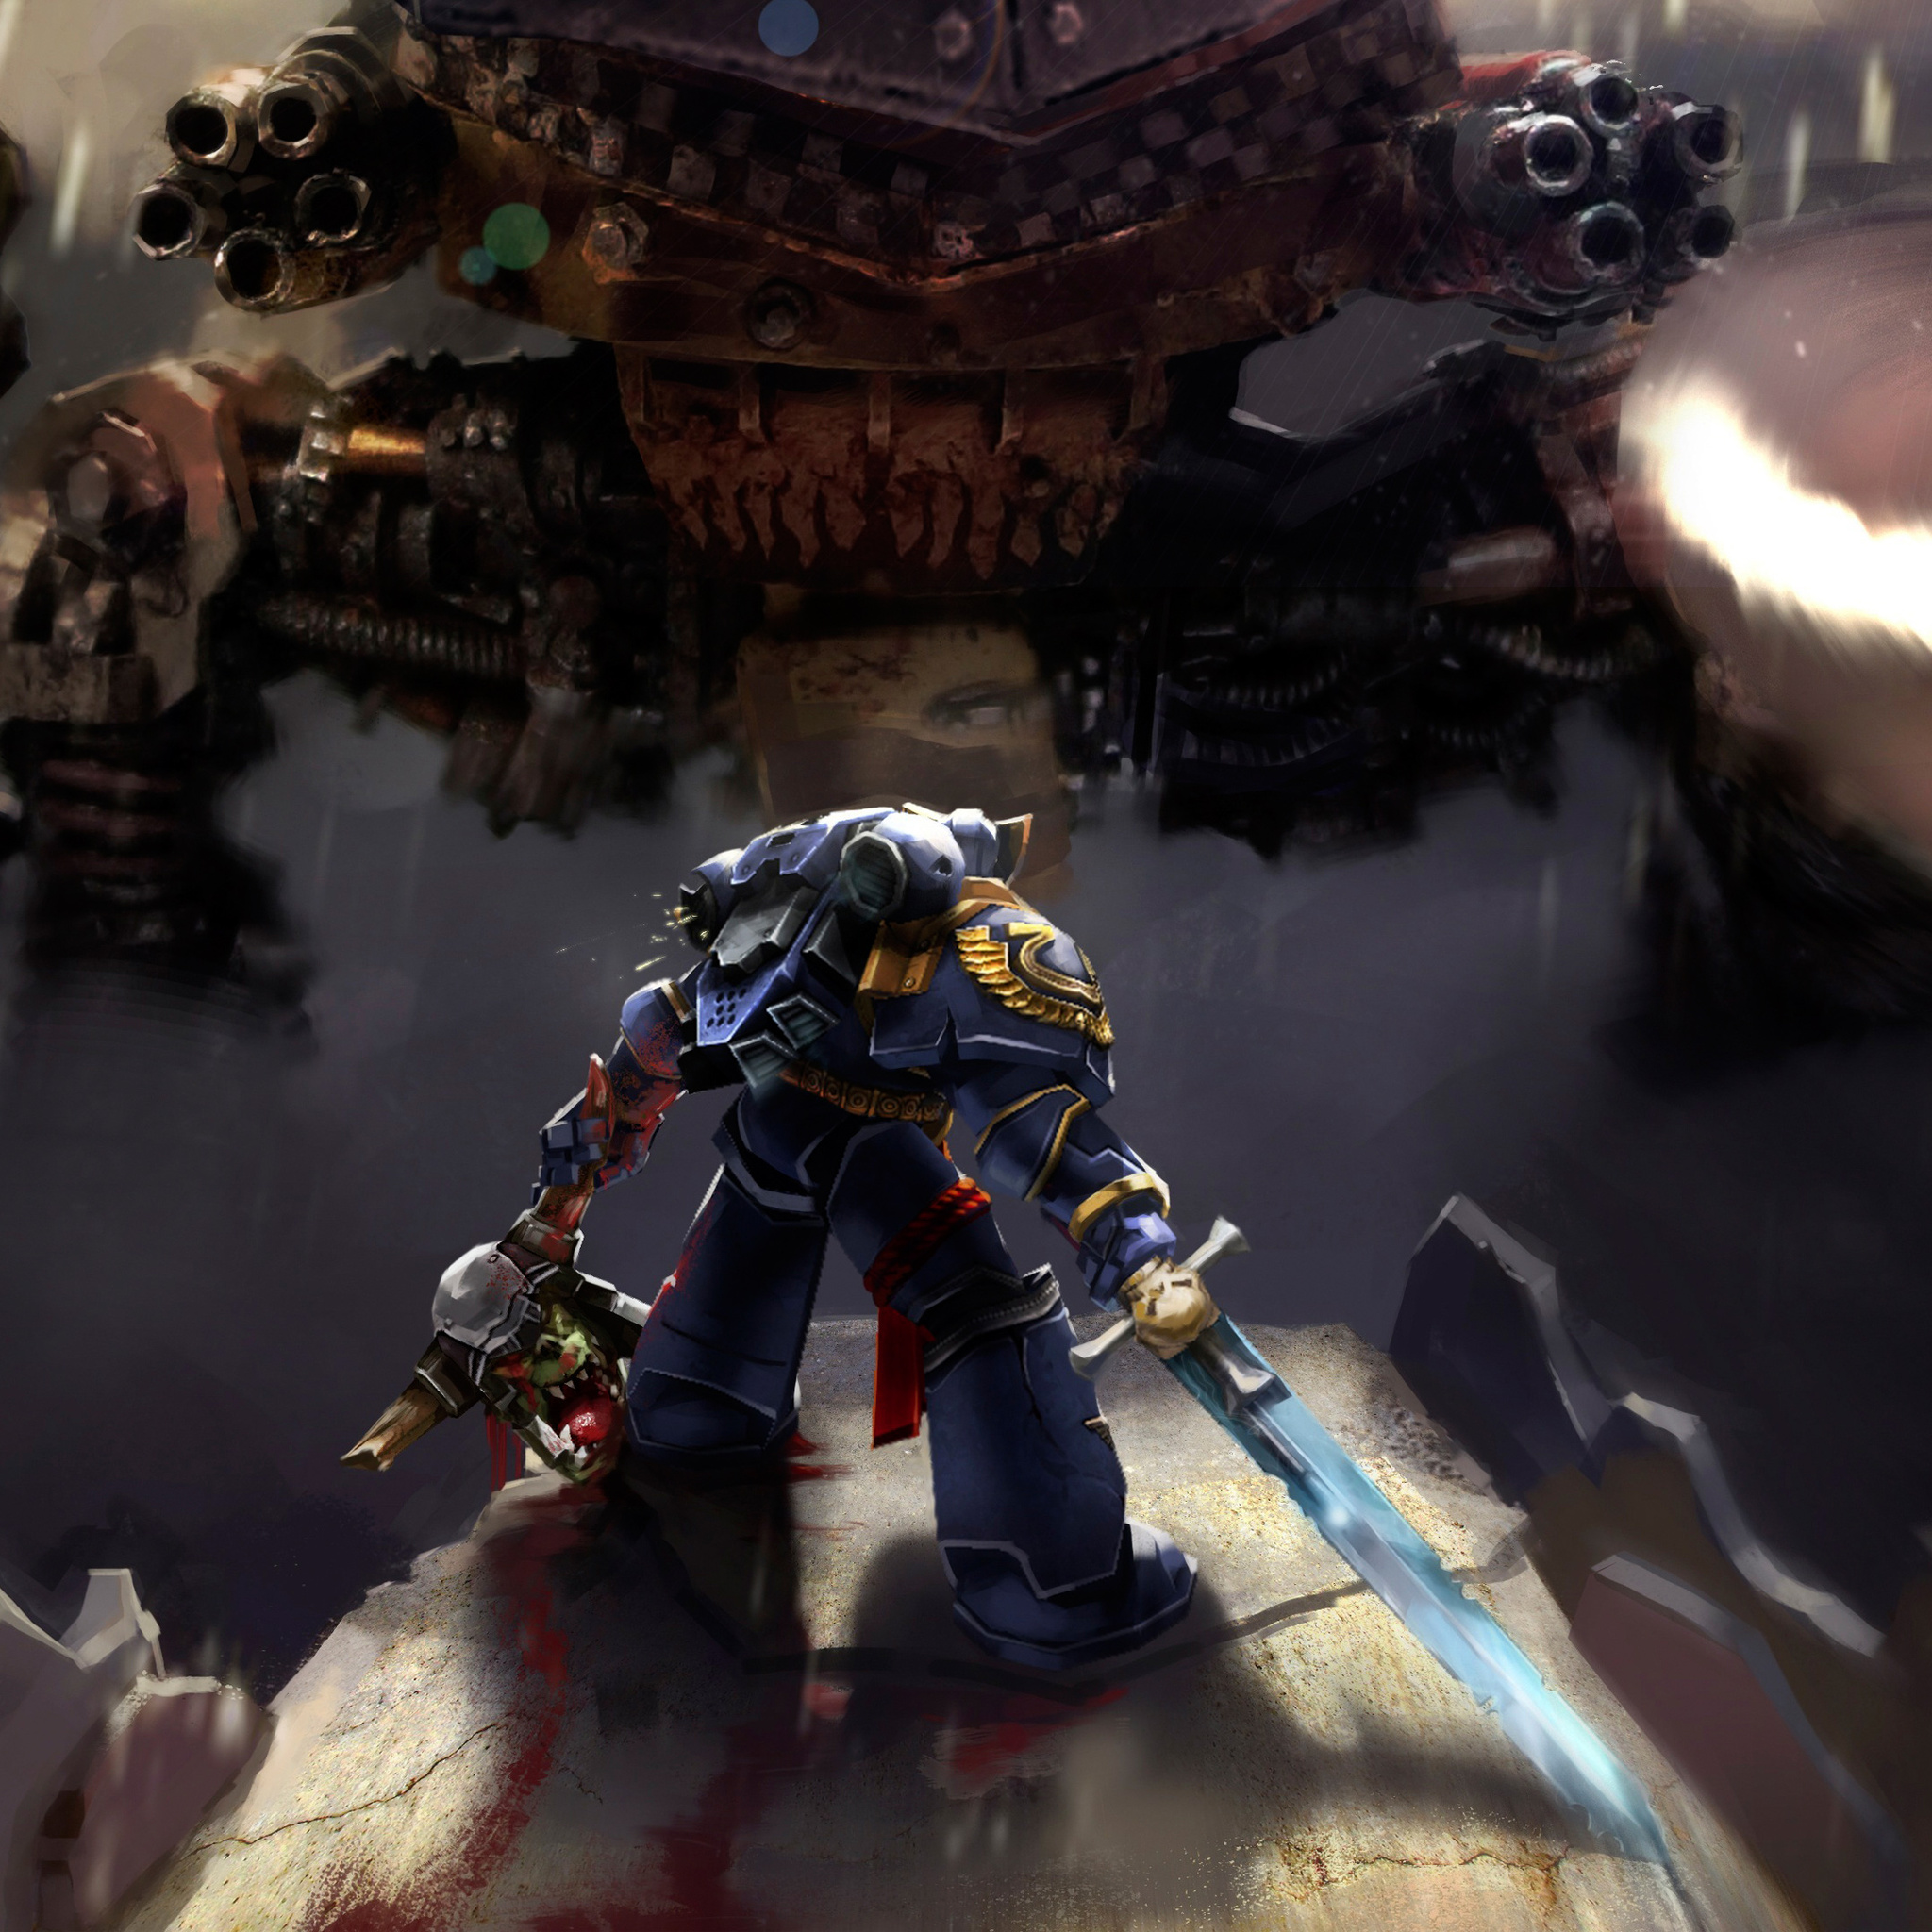 2048x2048 warhammer 40k space marine ultramarines ipad air hd 4k